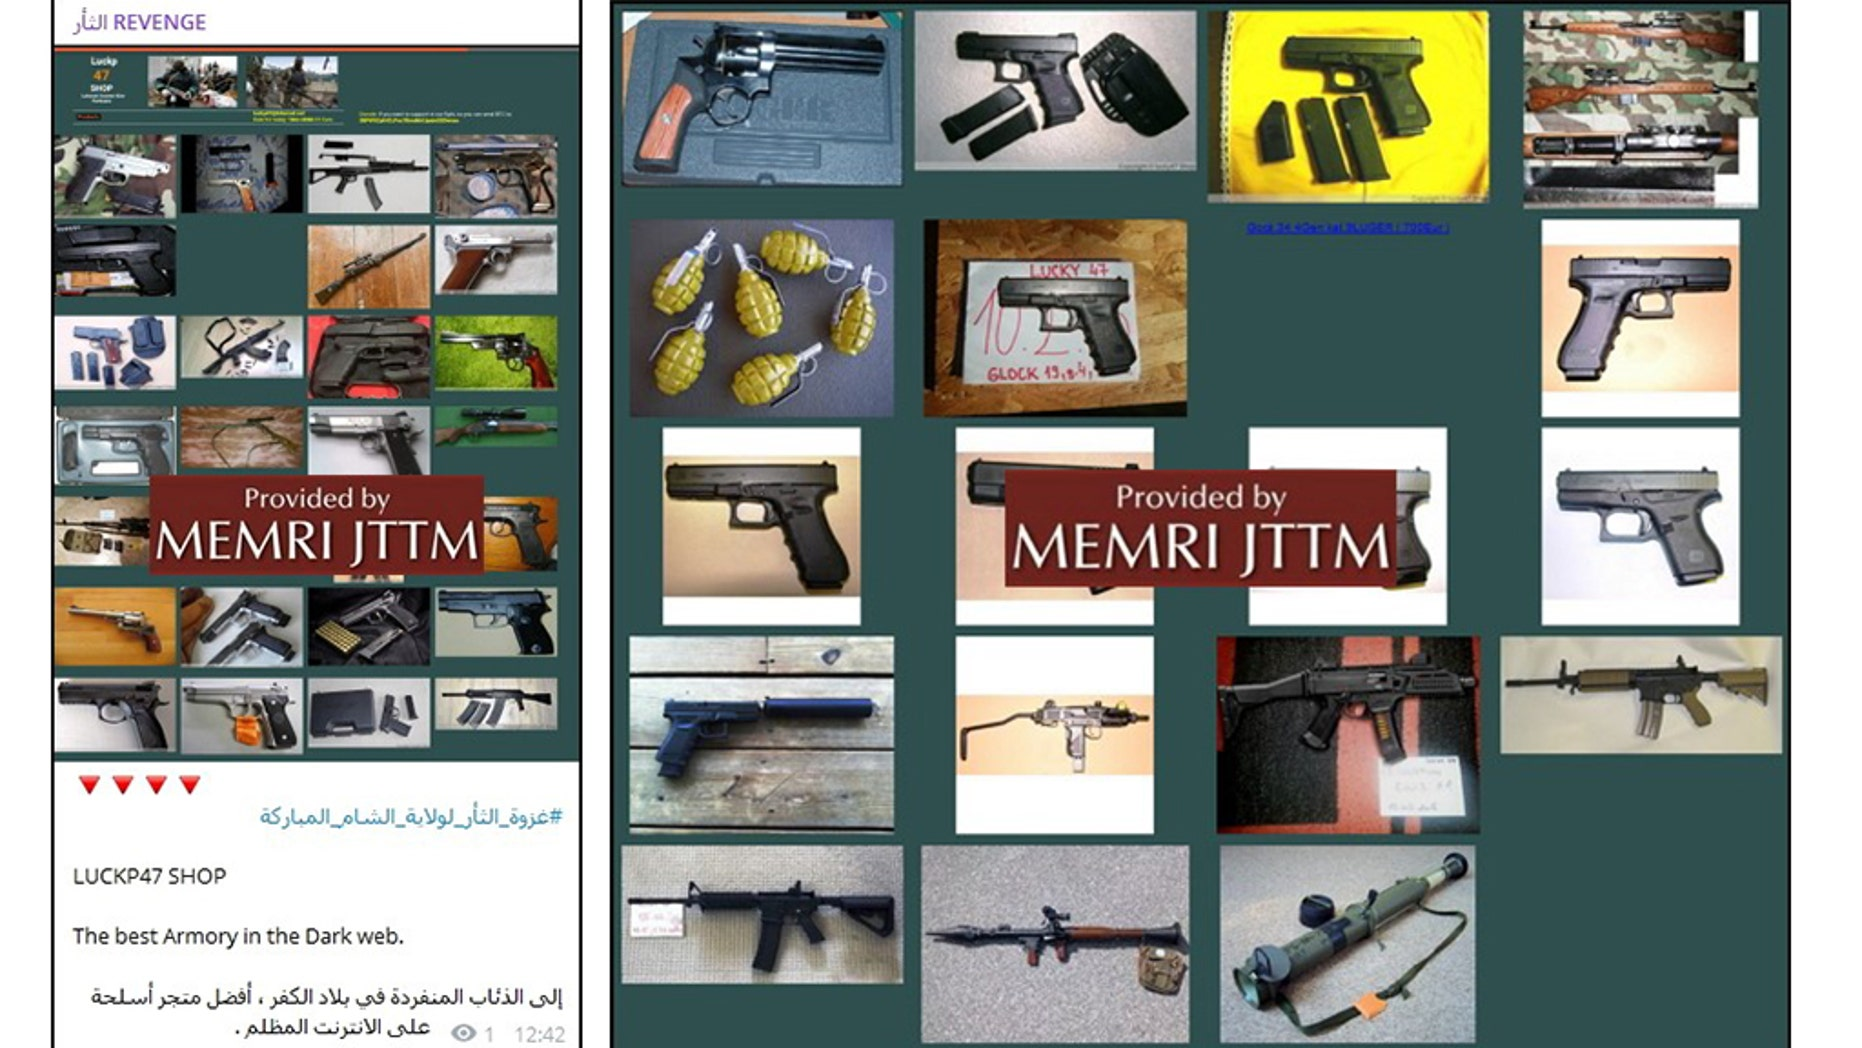 Pro-ISIS channel issues guide to buying weapons on dark web, using